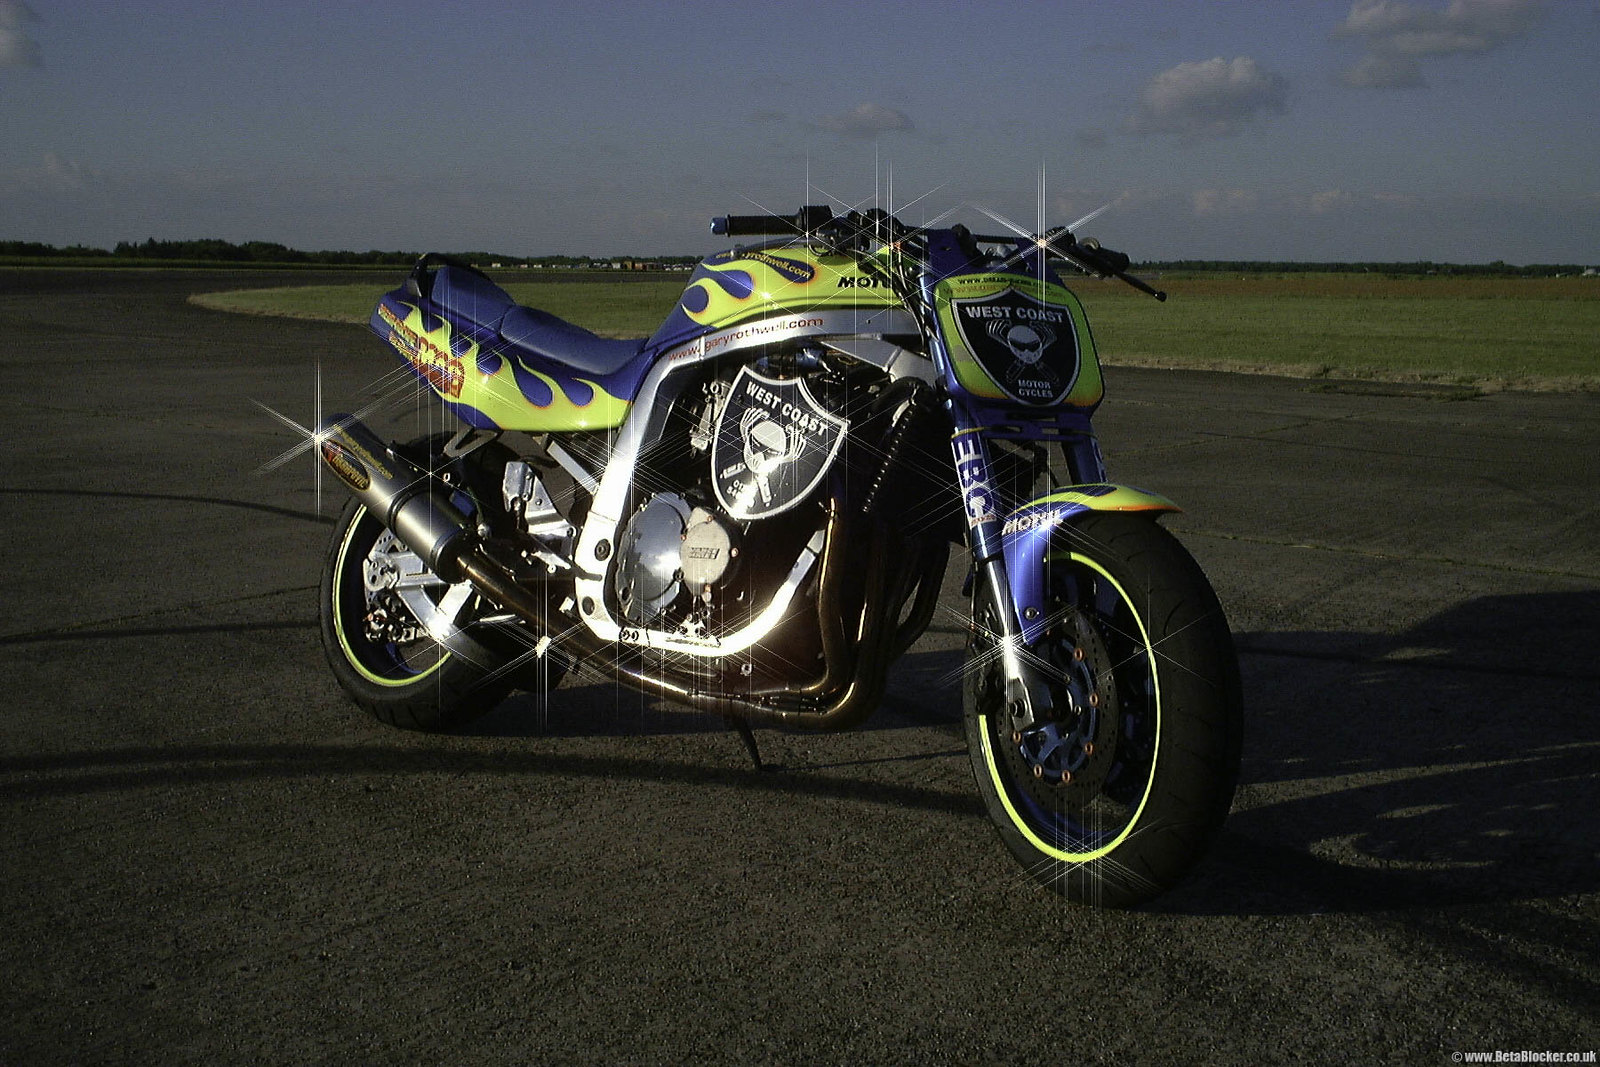 Suzuki GSXR1100 at Bruntingthorpe Proving Ground 2001